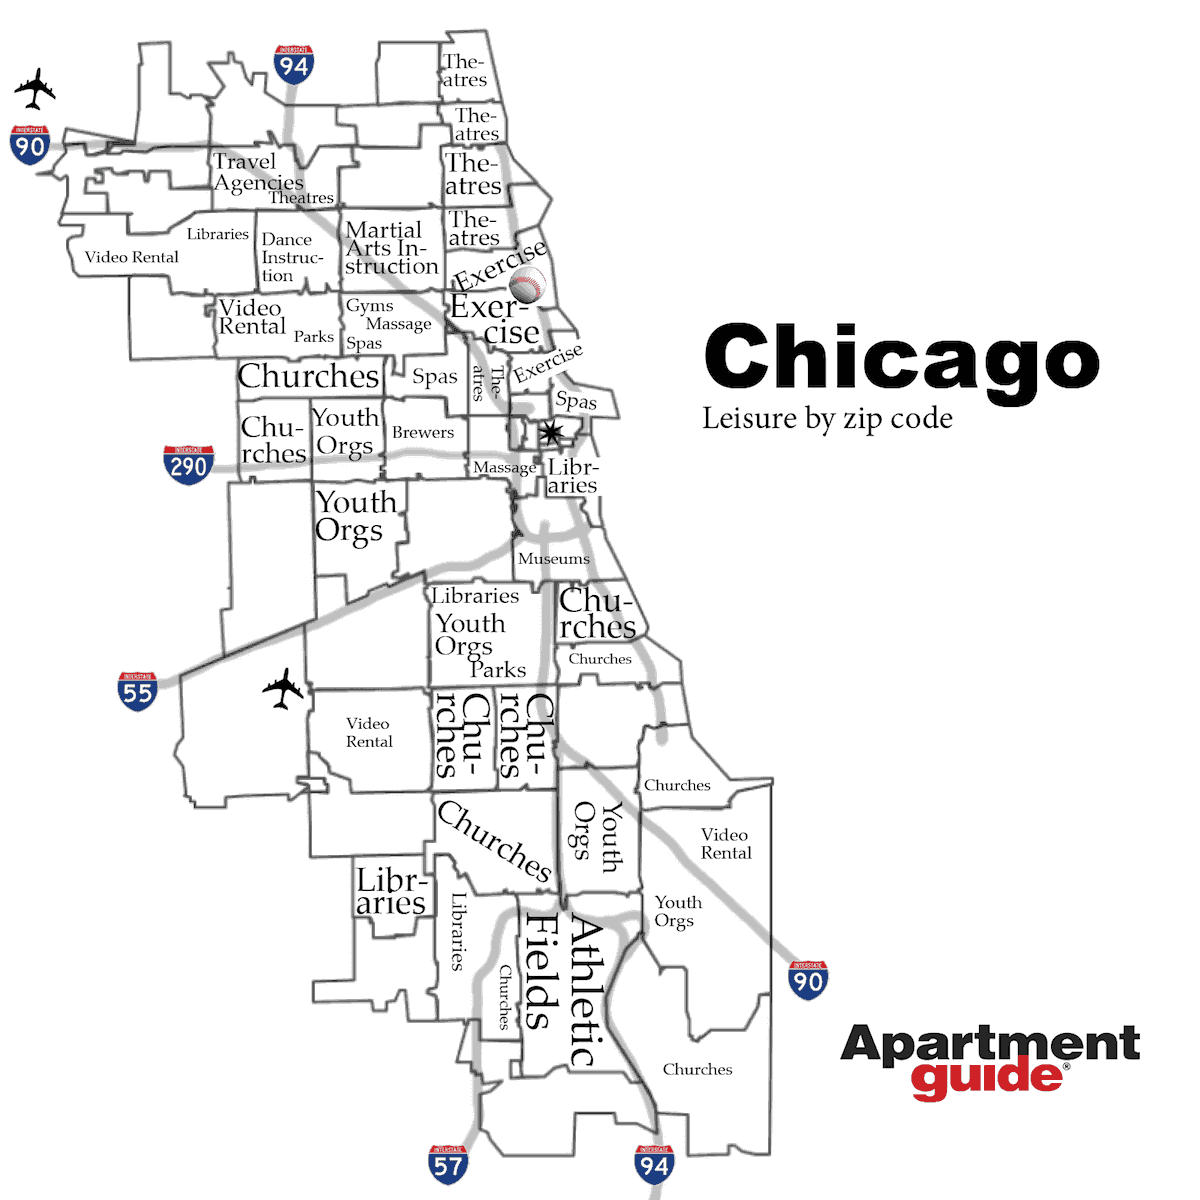 chicago leisure by zip code